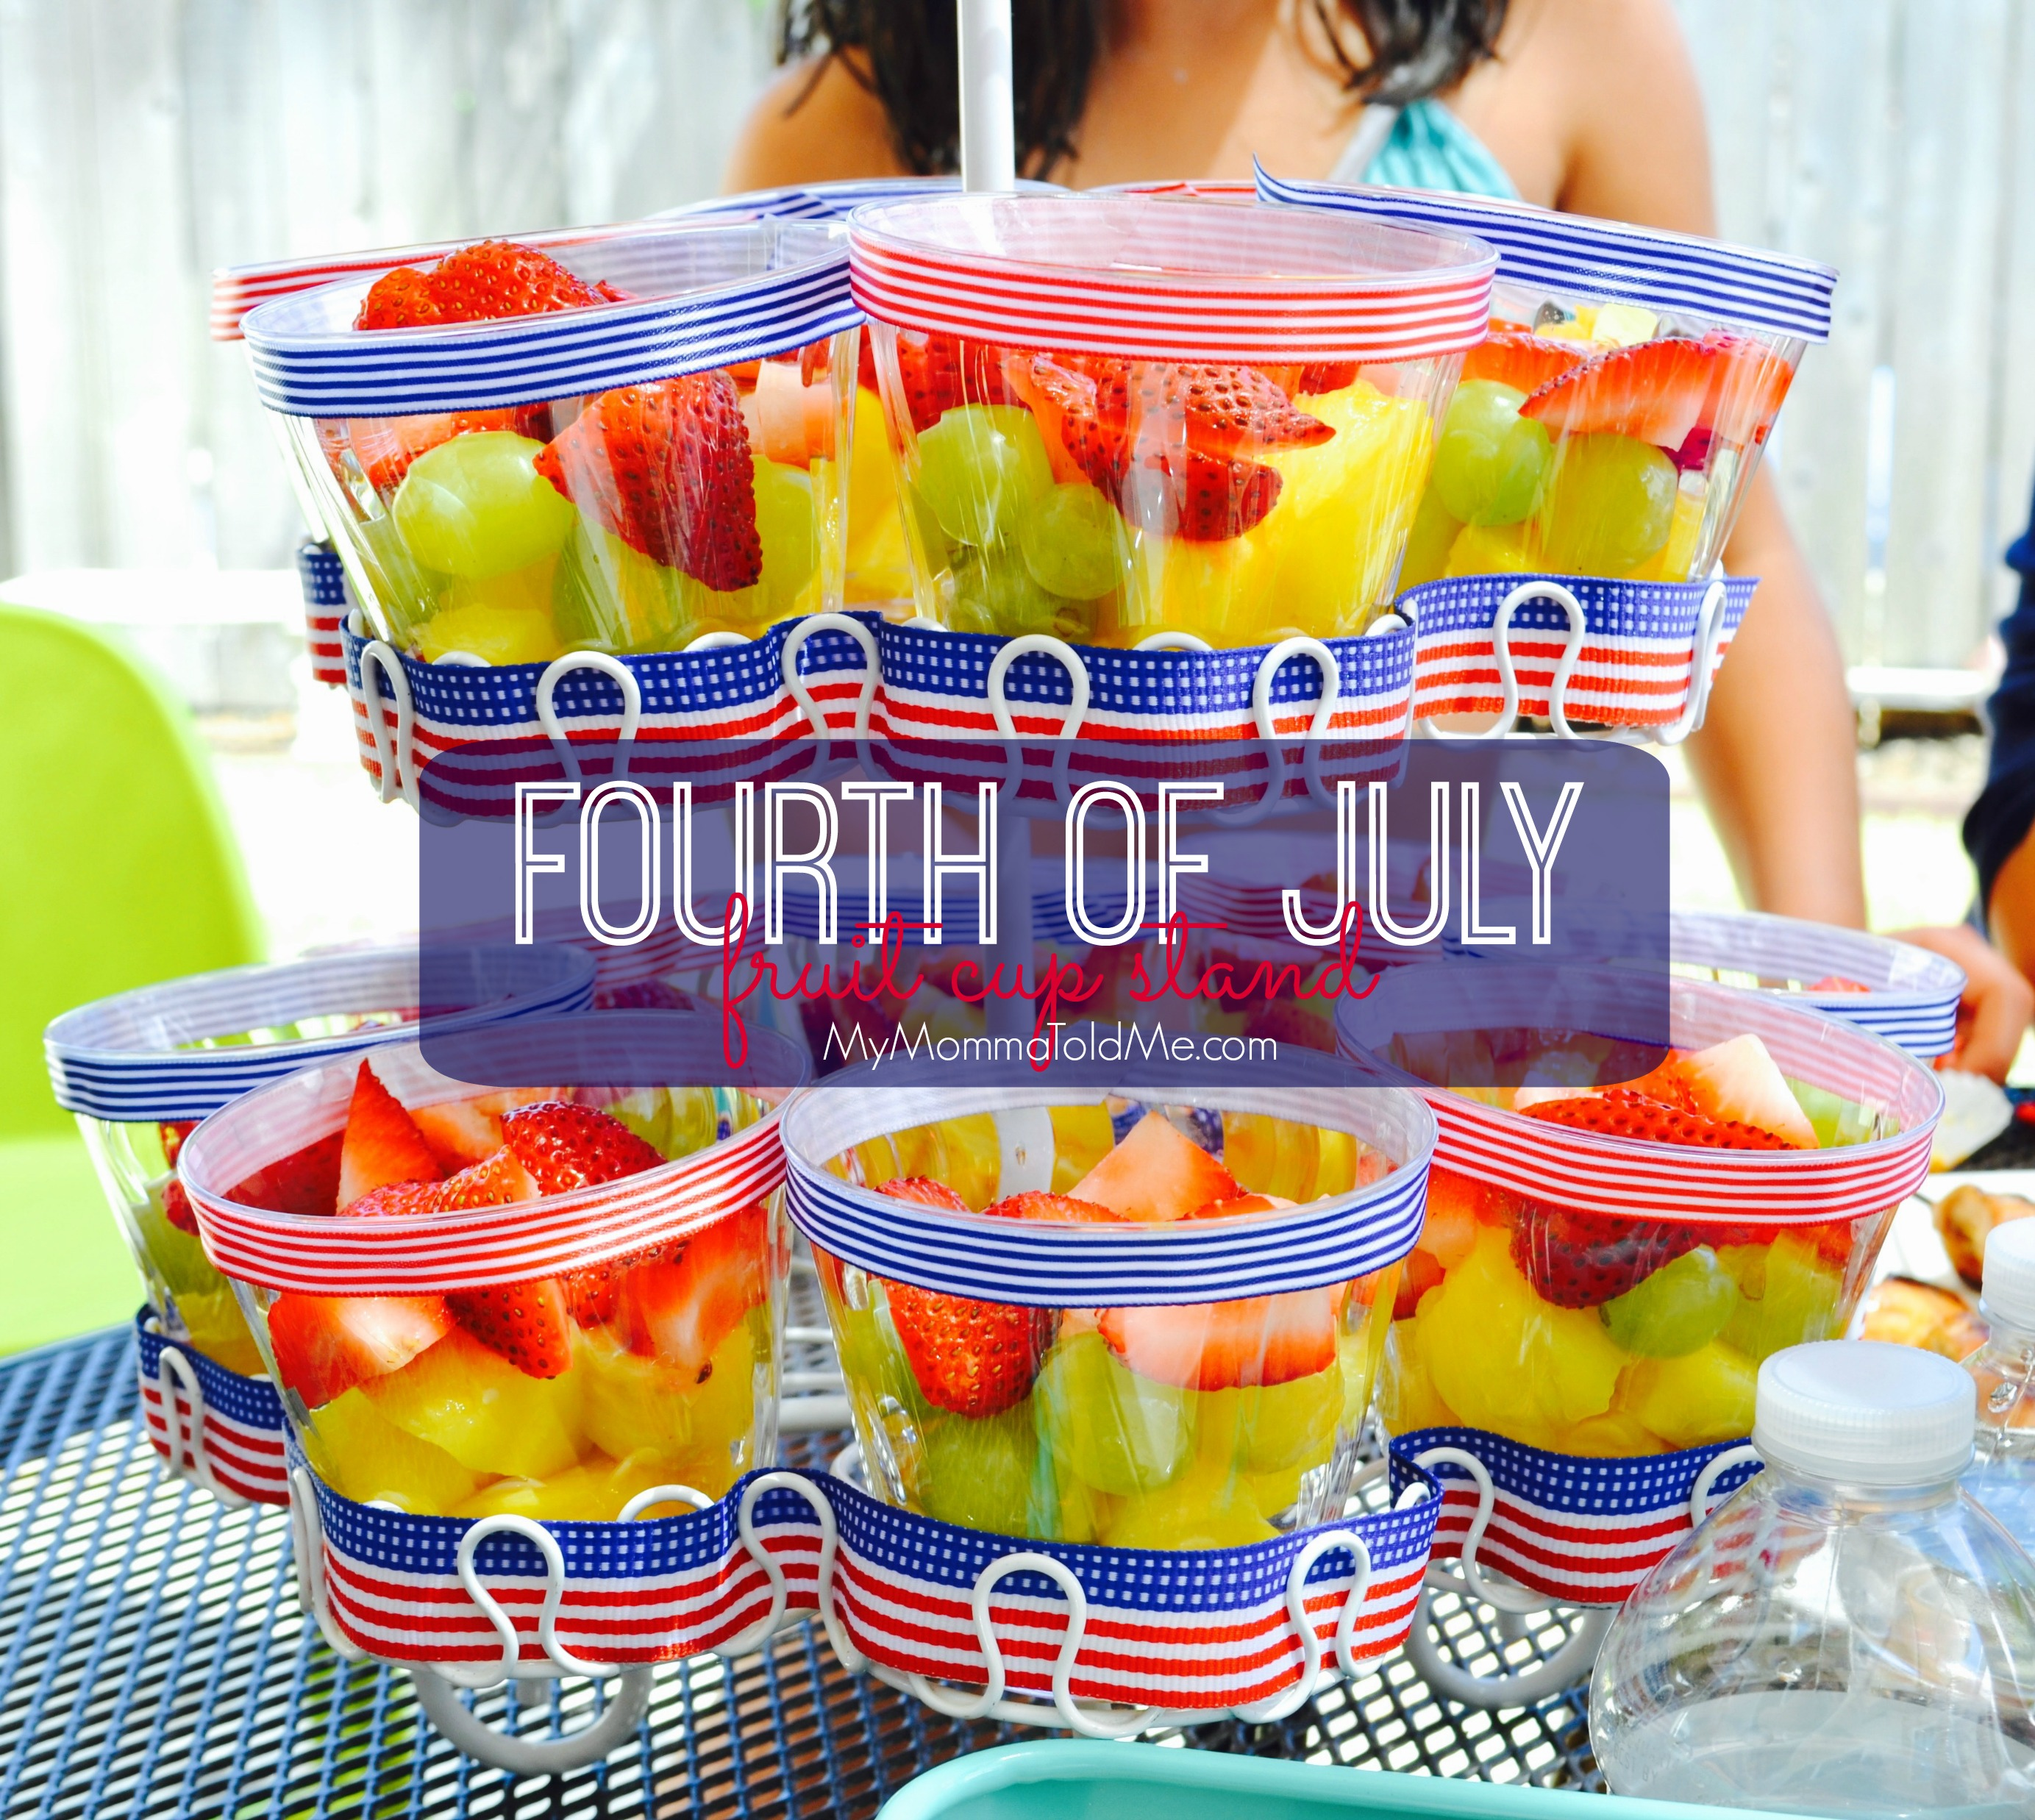 Fourth of July Fruit Cup Stand Dr Fuhrman Eat to Live Program Recipe MyMommaToldMe.com